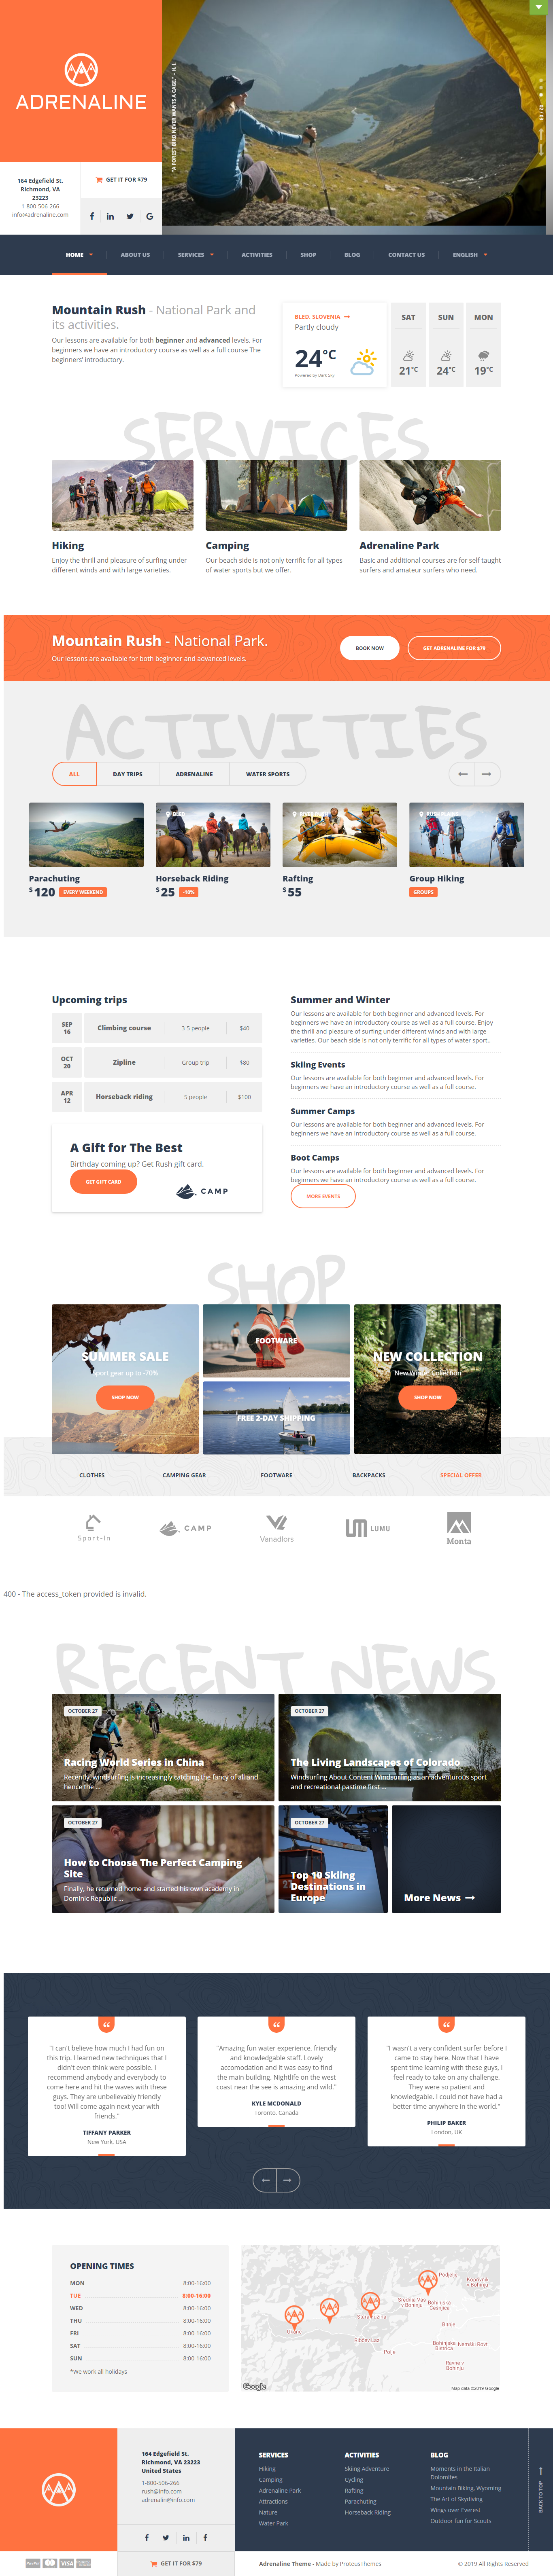 Adrenaline - Best Premium Outdoor Activities WordPress Theme